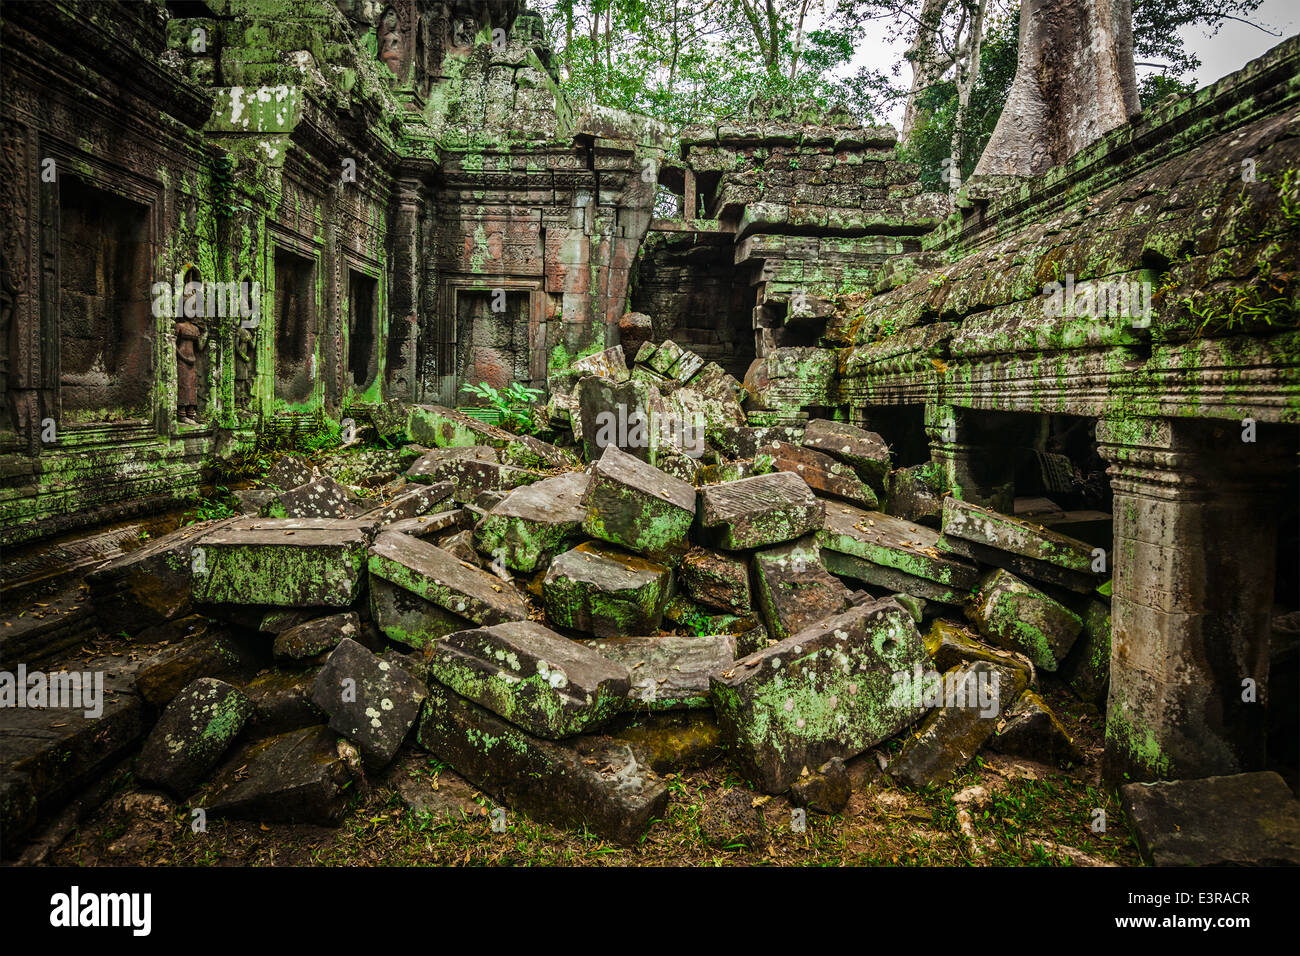 High dynamic range (hdr) image of ancient stone ruins of Ta Prohm temple, Angkor, Cambodia - Stock Image